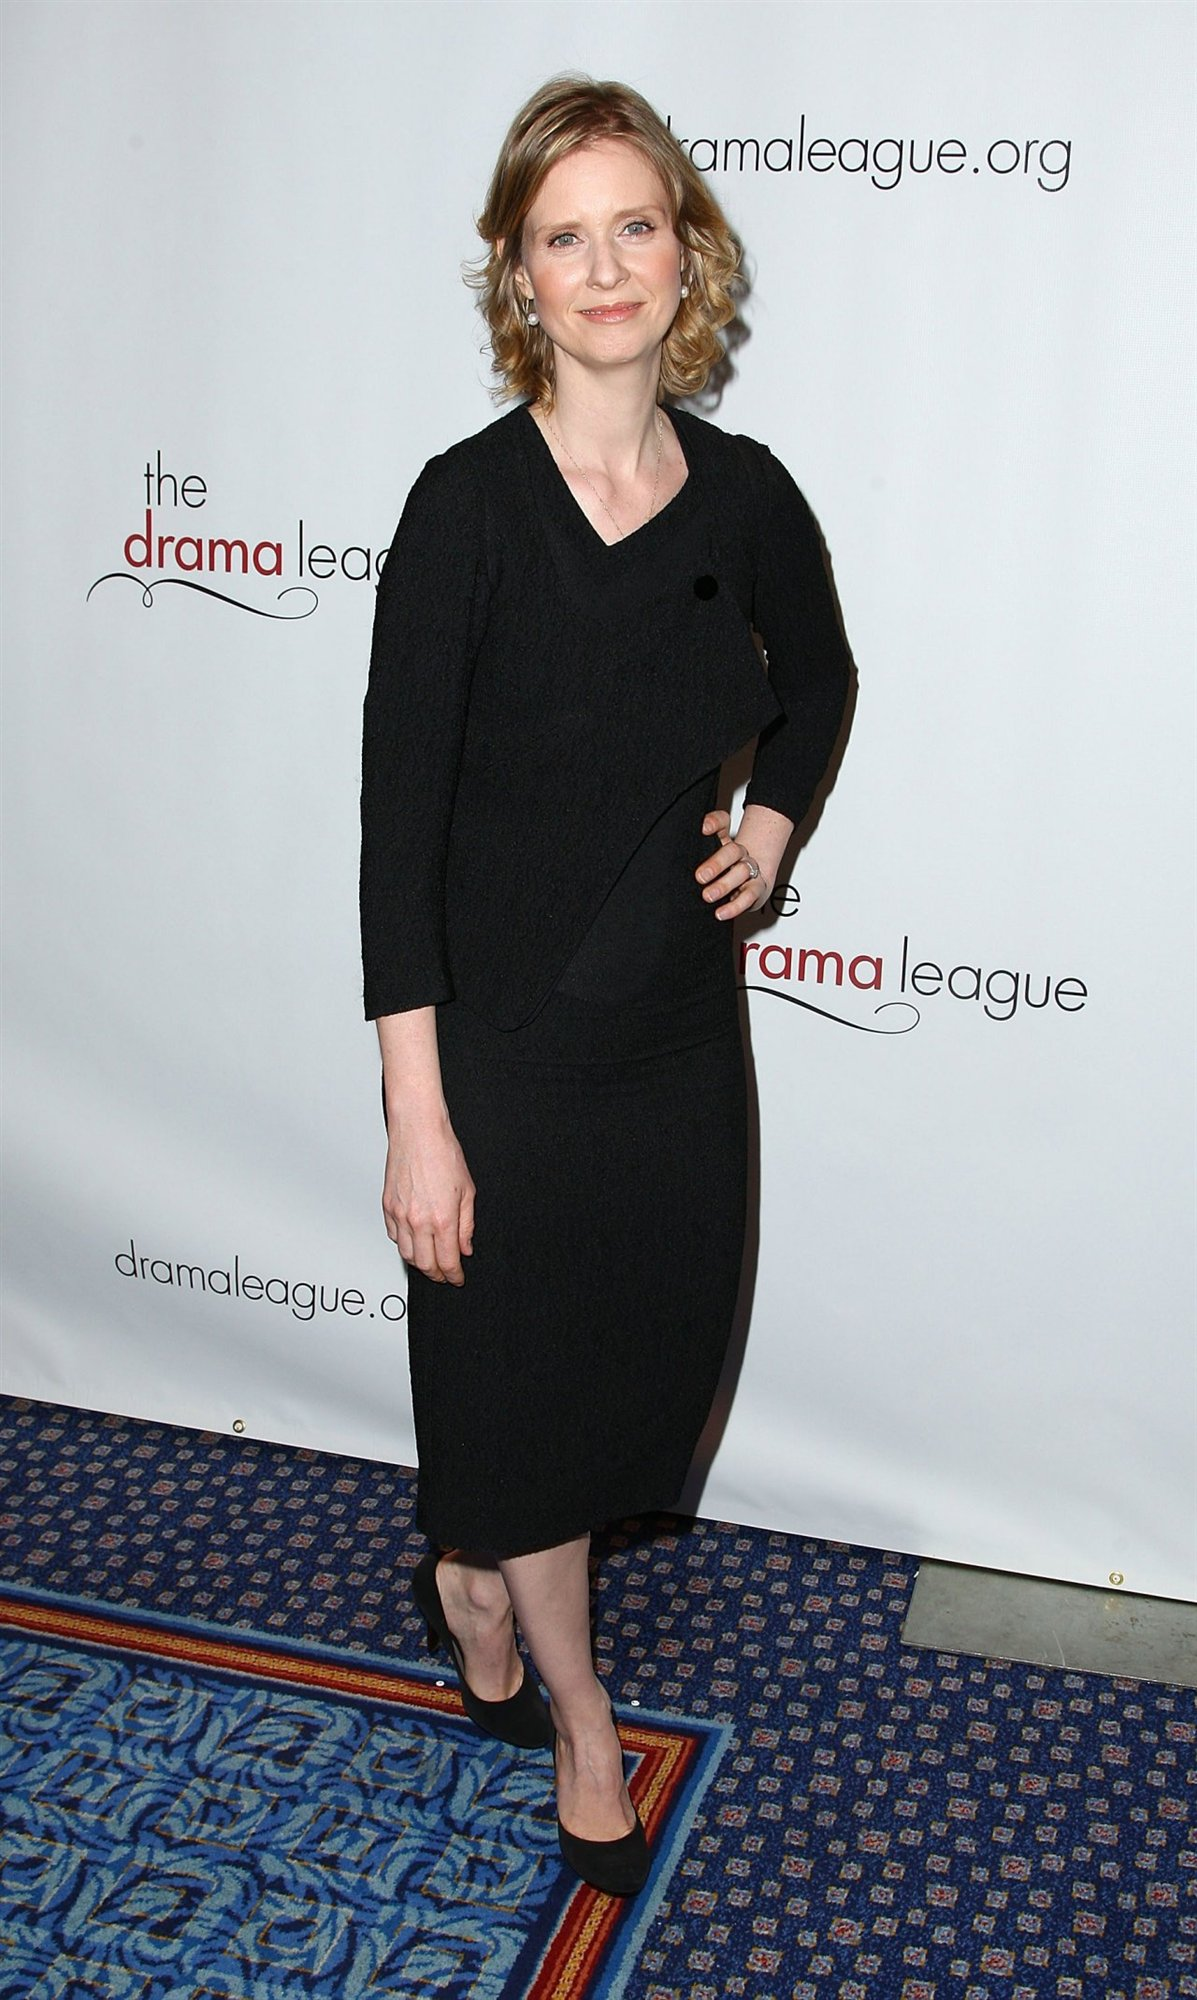 cynthia nixon wallpaper - photo #49